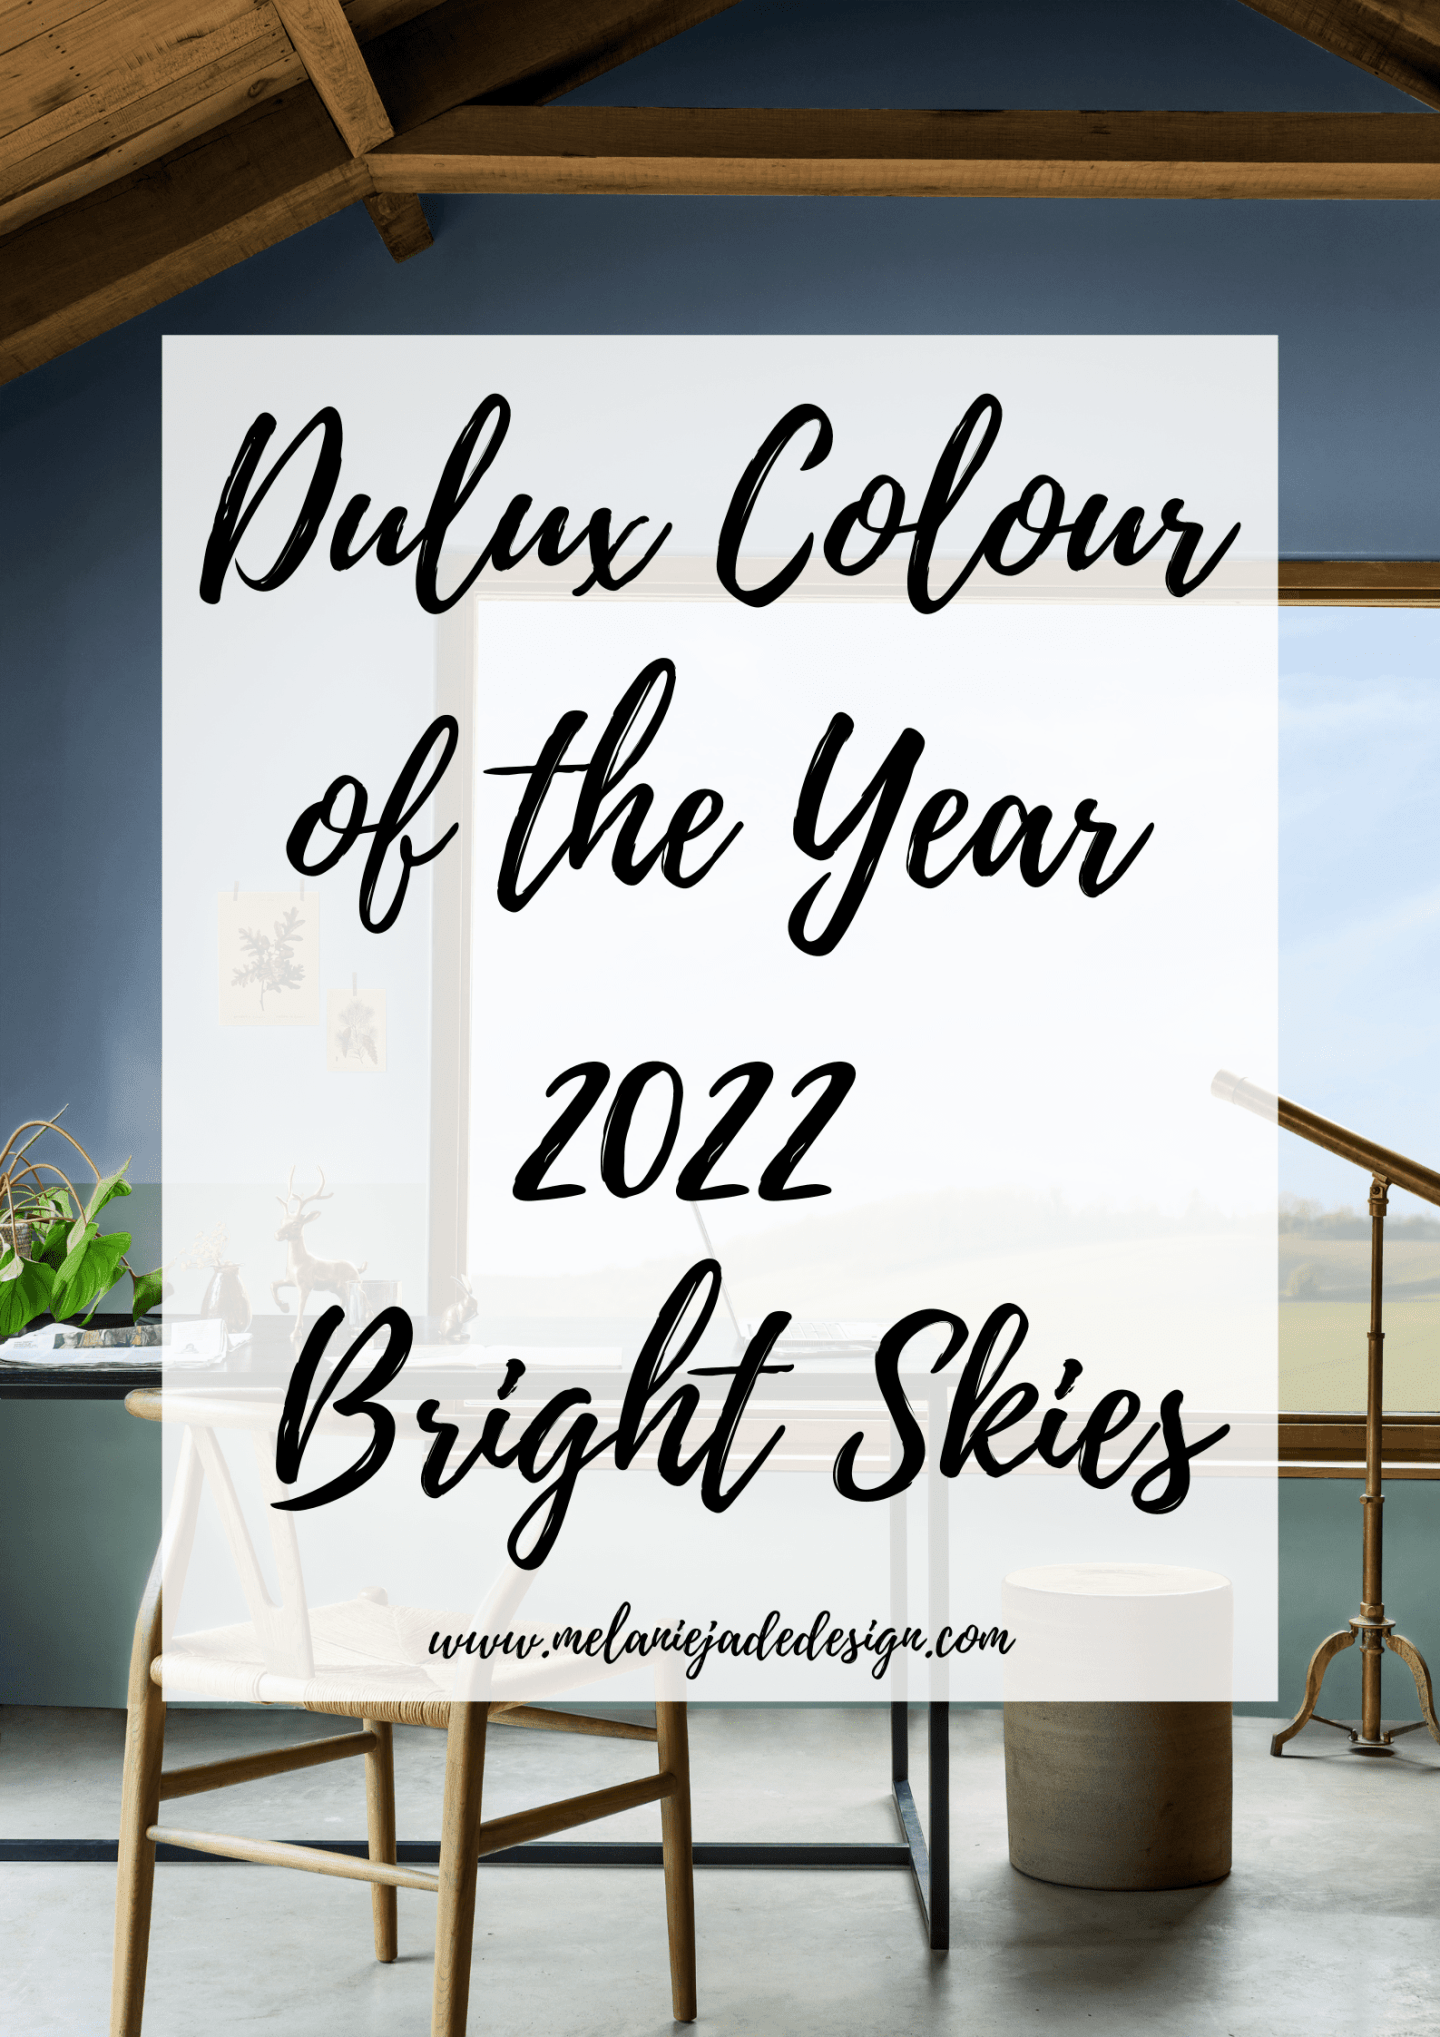 dulux colour of the year 2022 bright skies